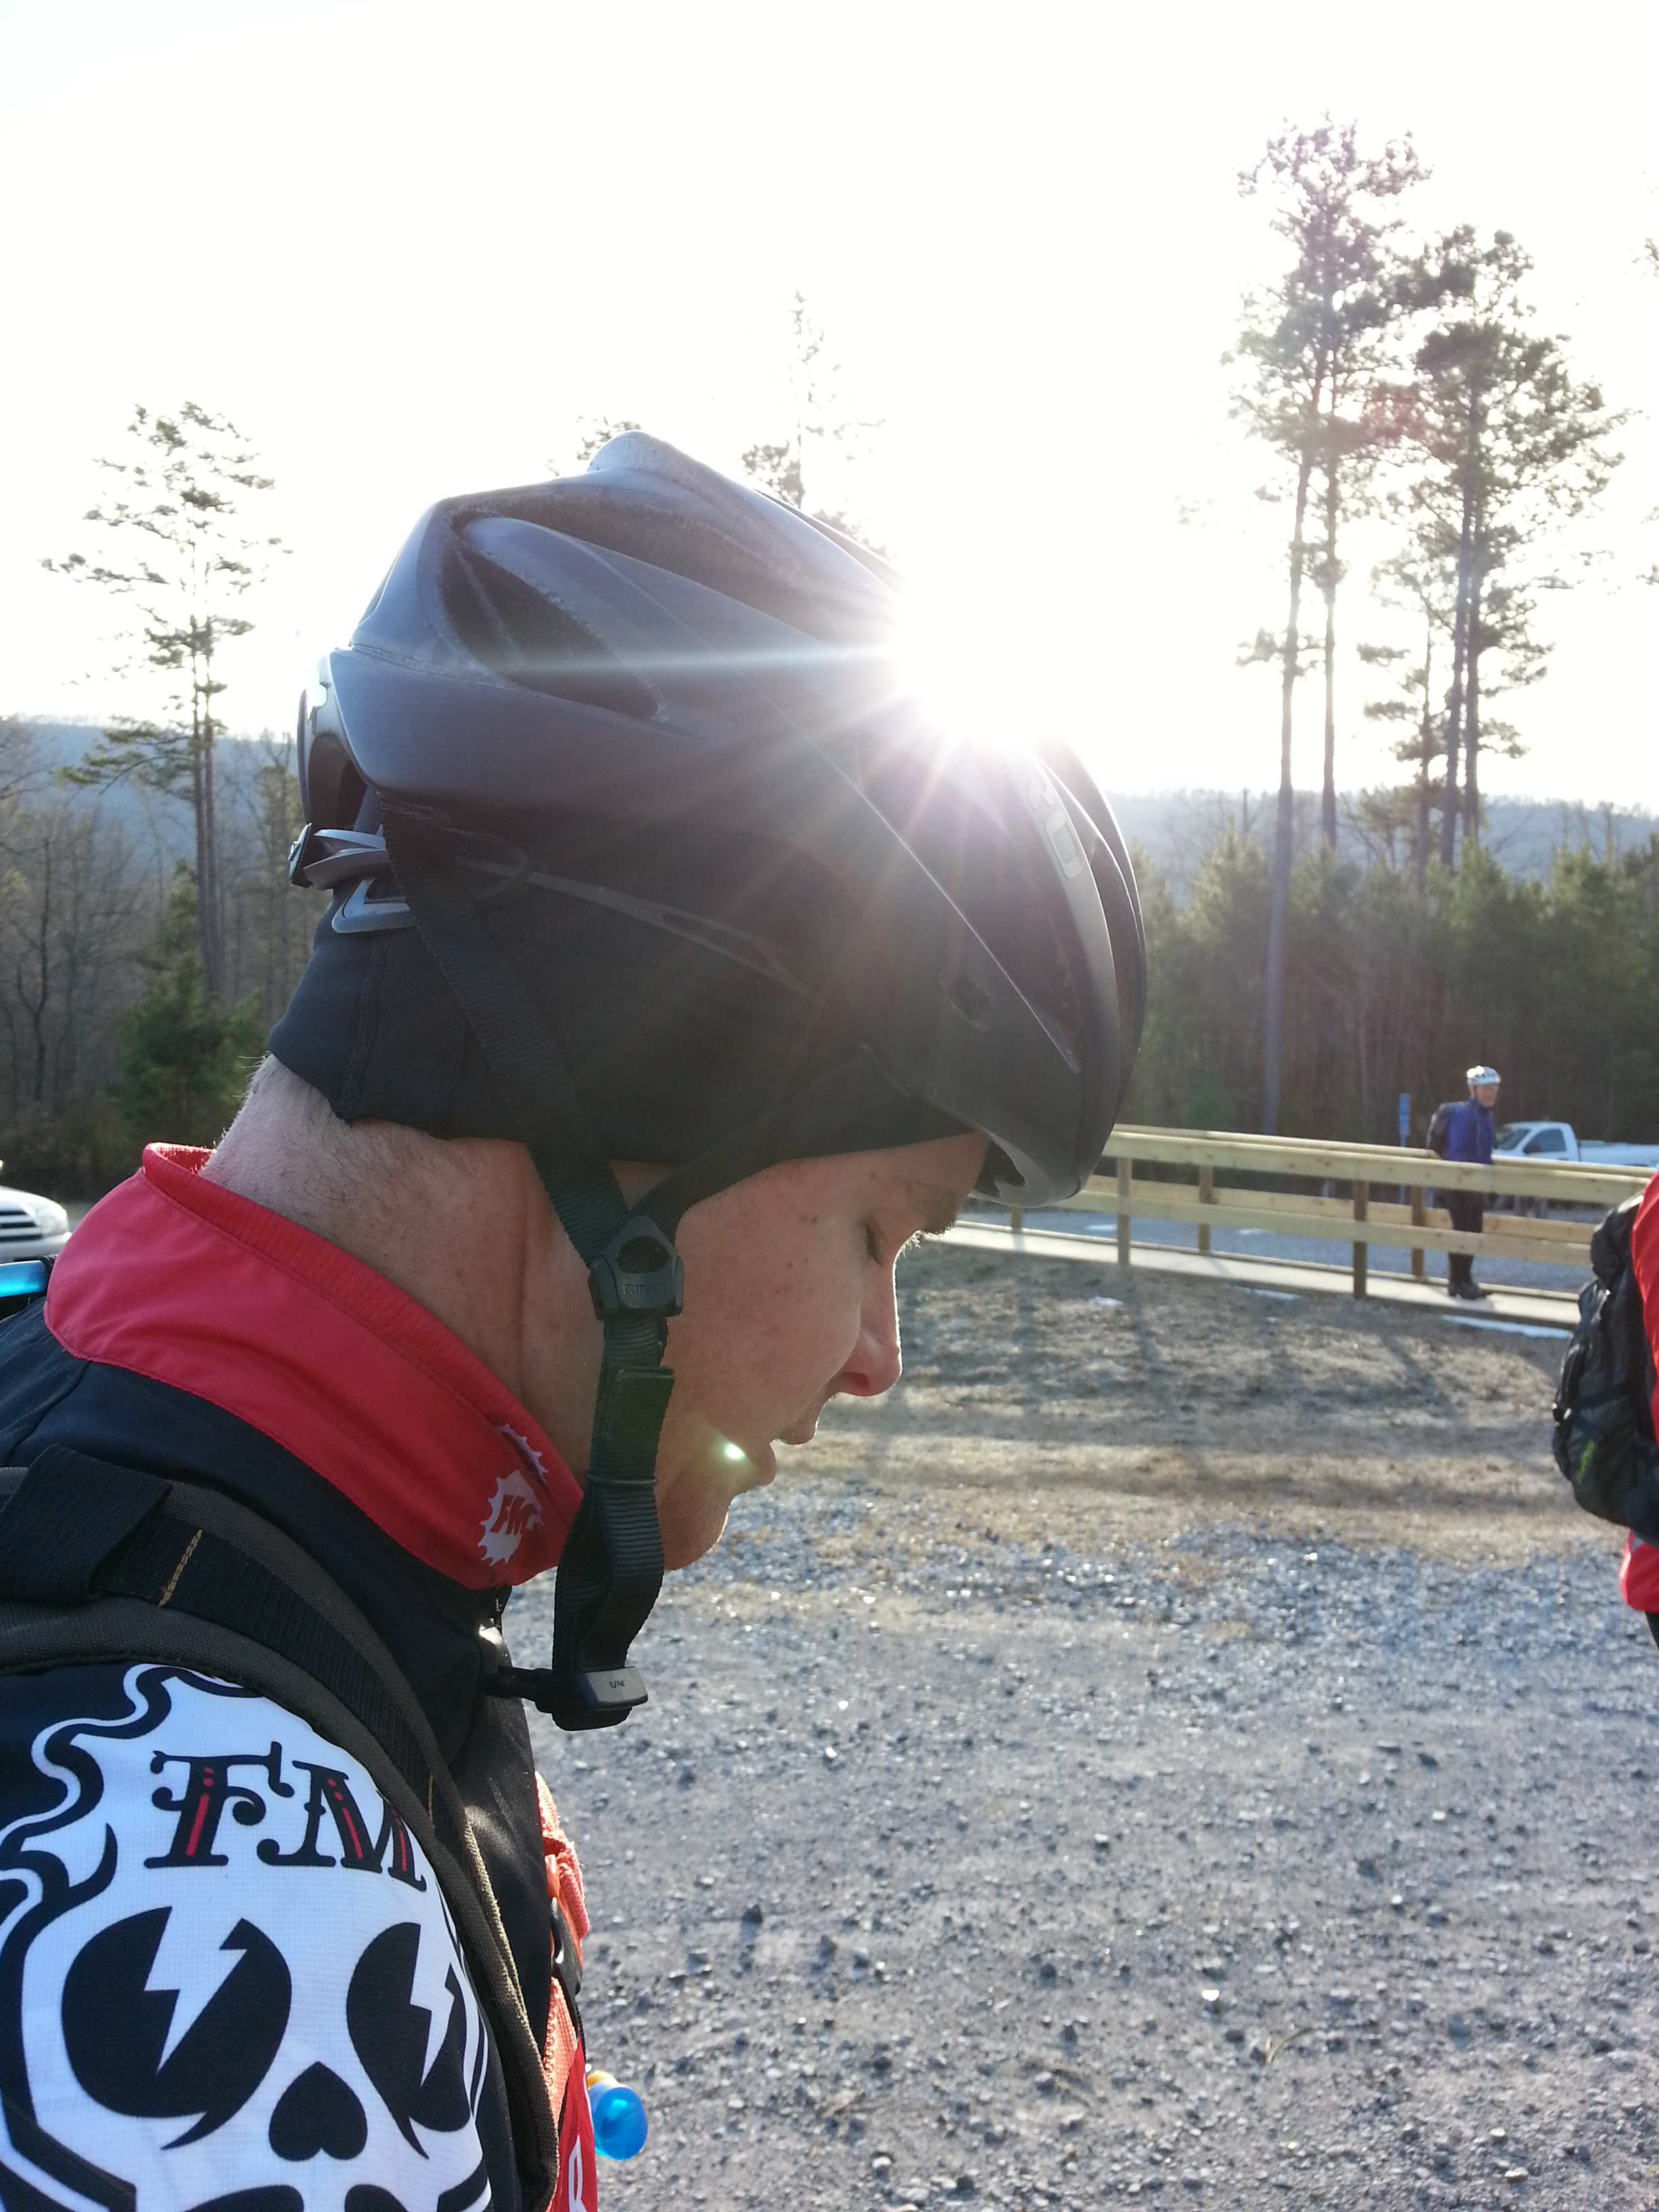 Xtopher warming up his race face